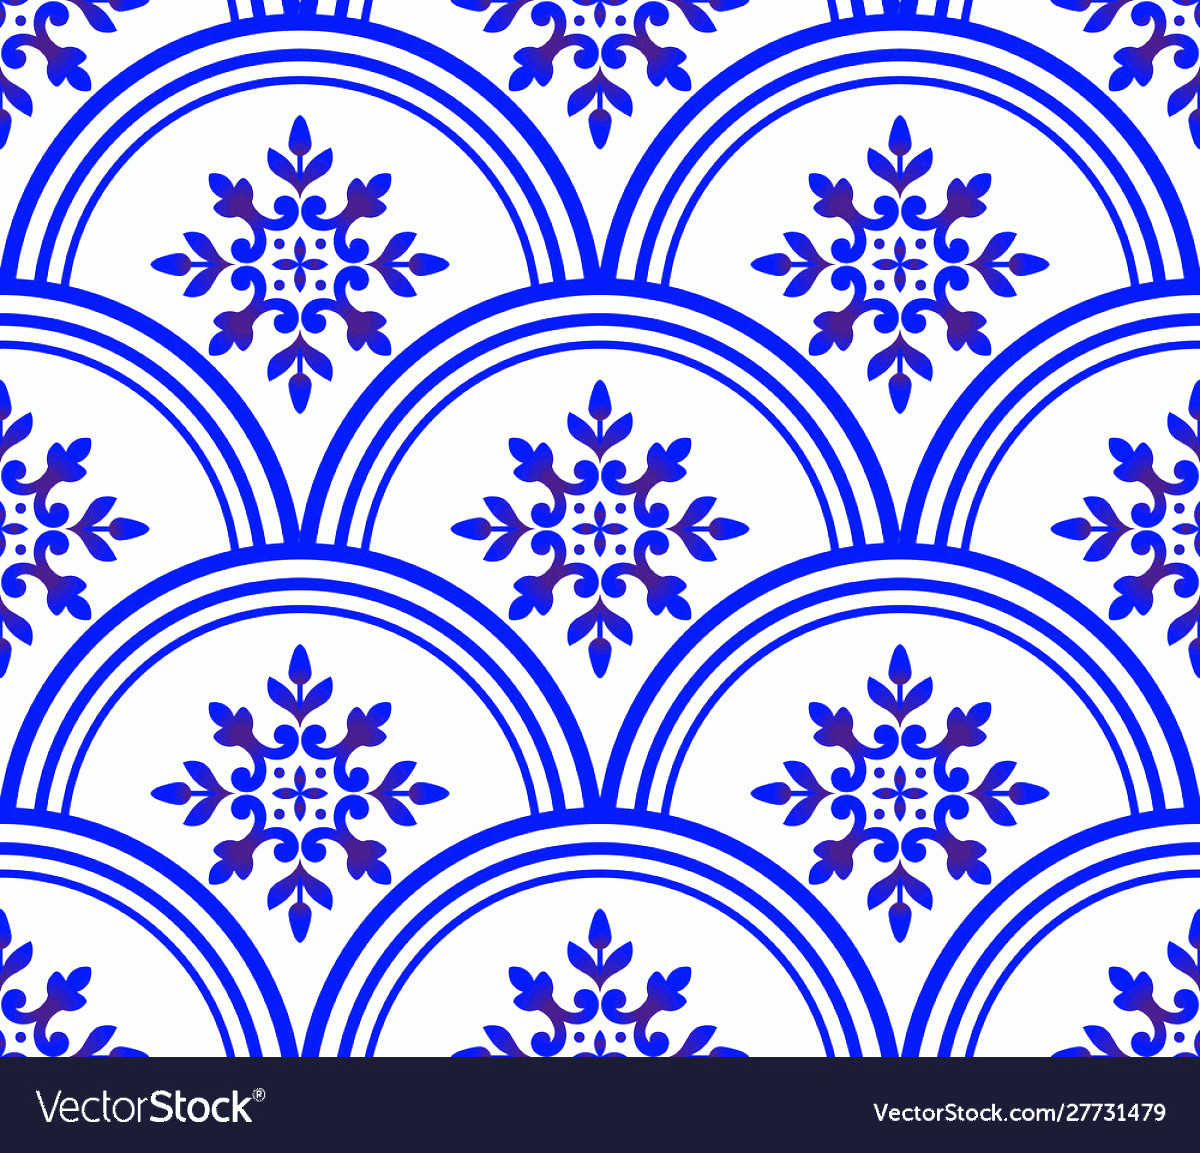 Blue And White Damask Vectors: Blue And White Damask Wallpaper Vector